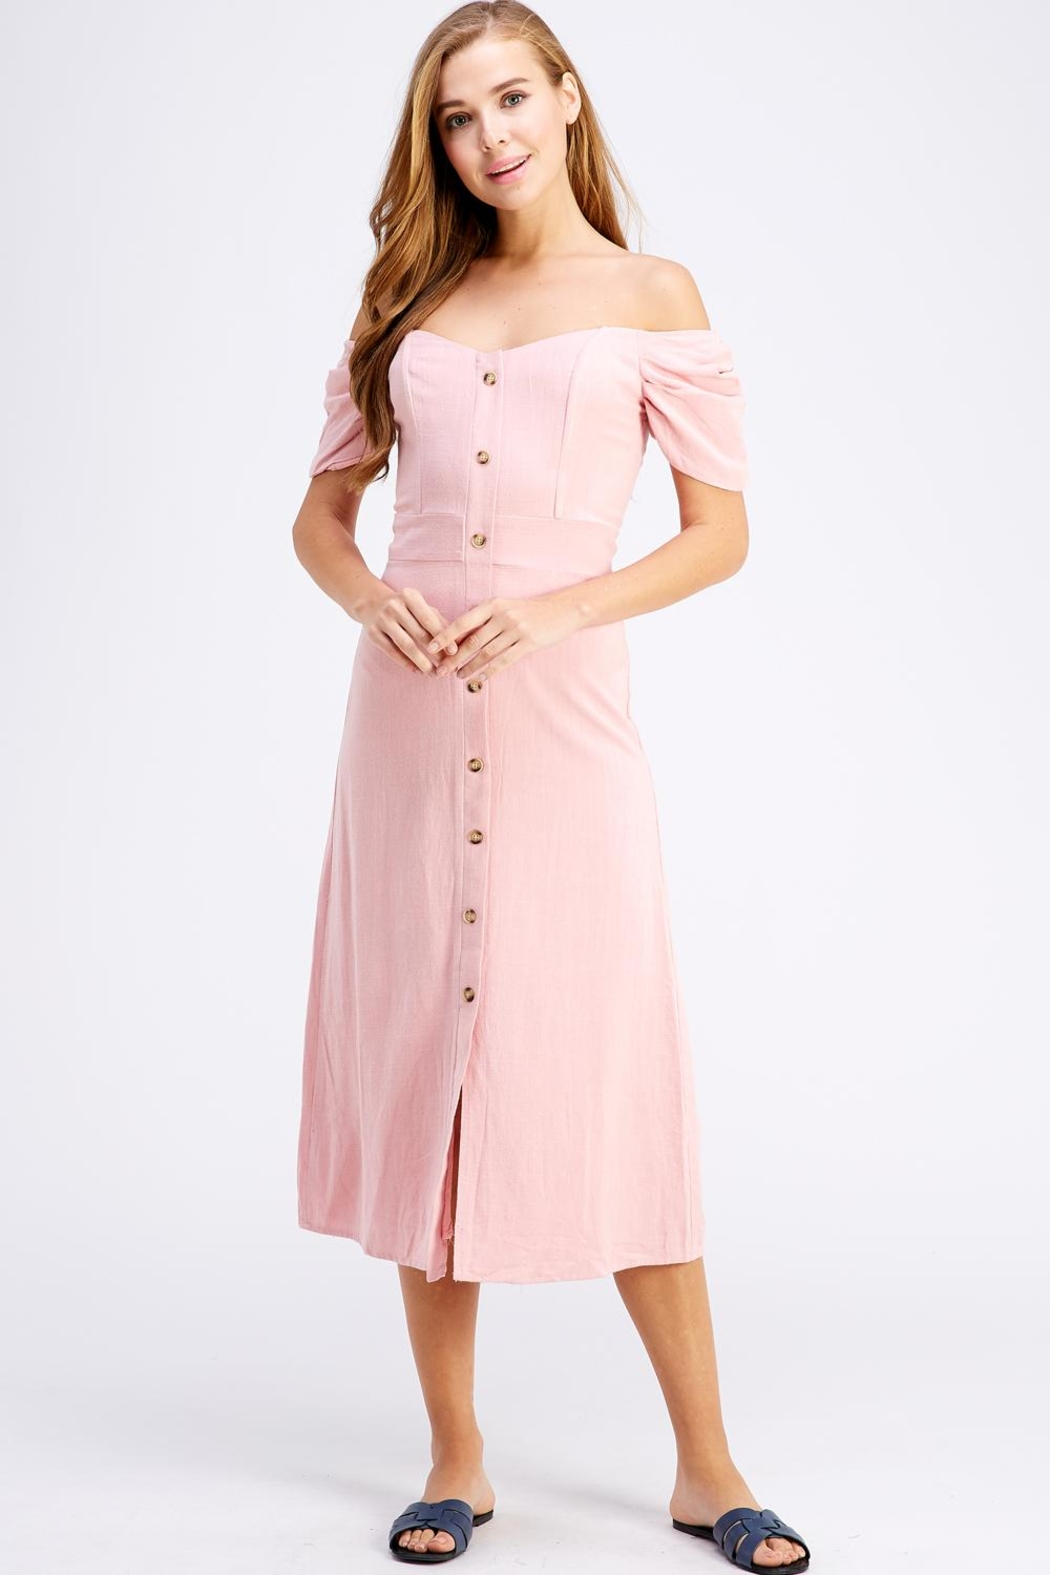 dress forum Button-Down Midi Dress - Front Cropped Image